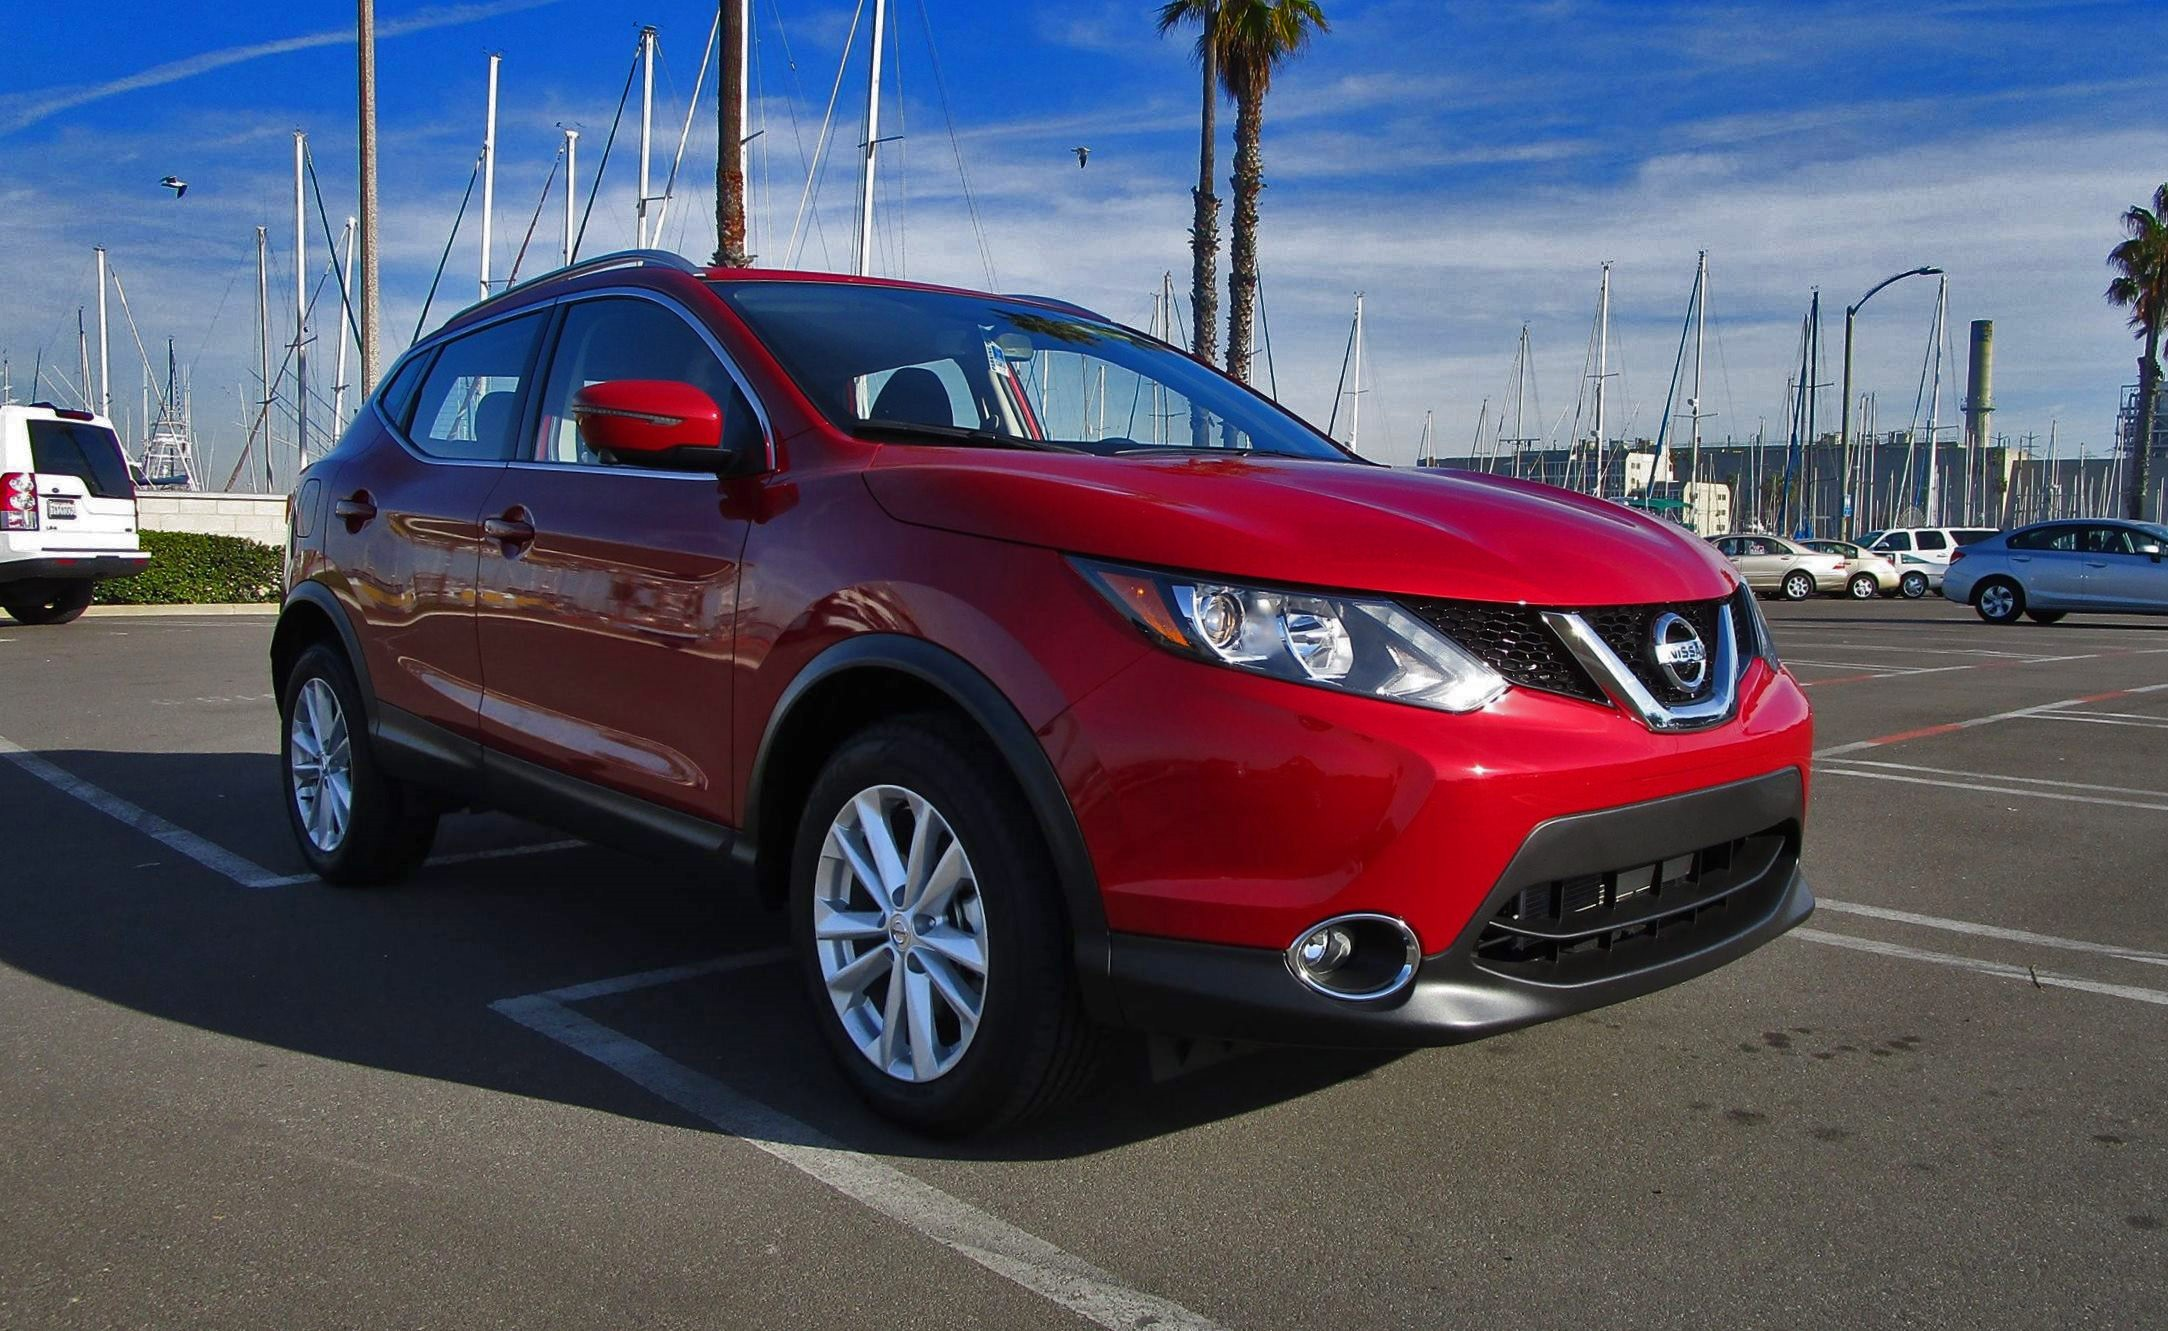 2017 nissan rogue sport sv awd road test review by ben lewis. Black Bedroom Furniture Sets. Home Design Ideas